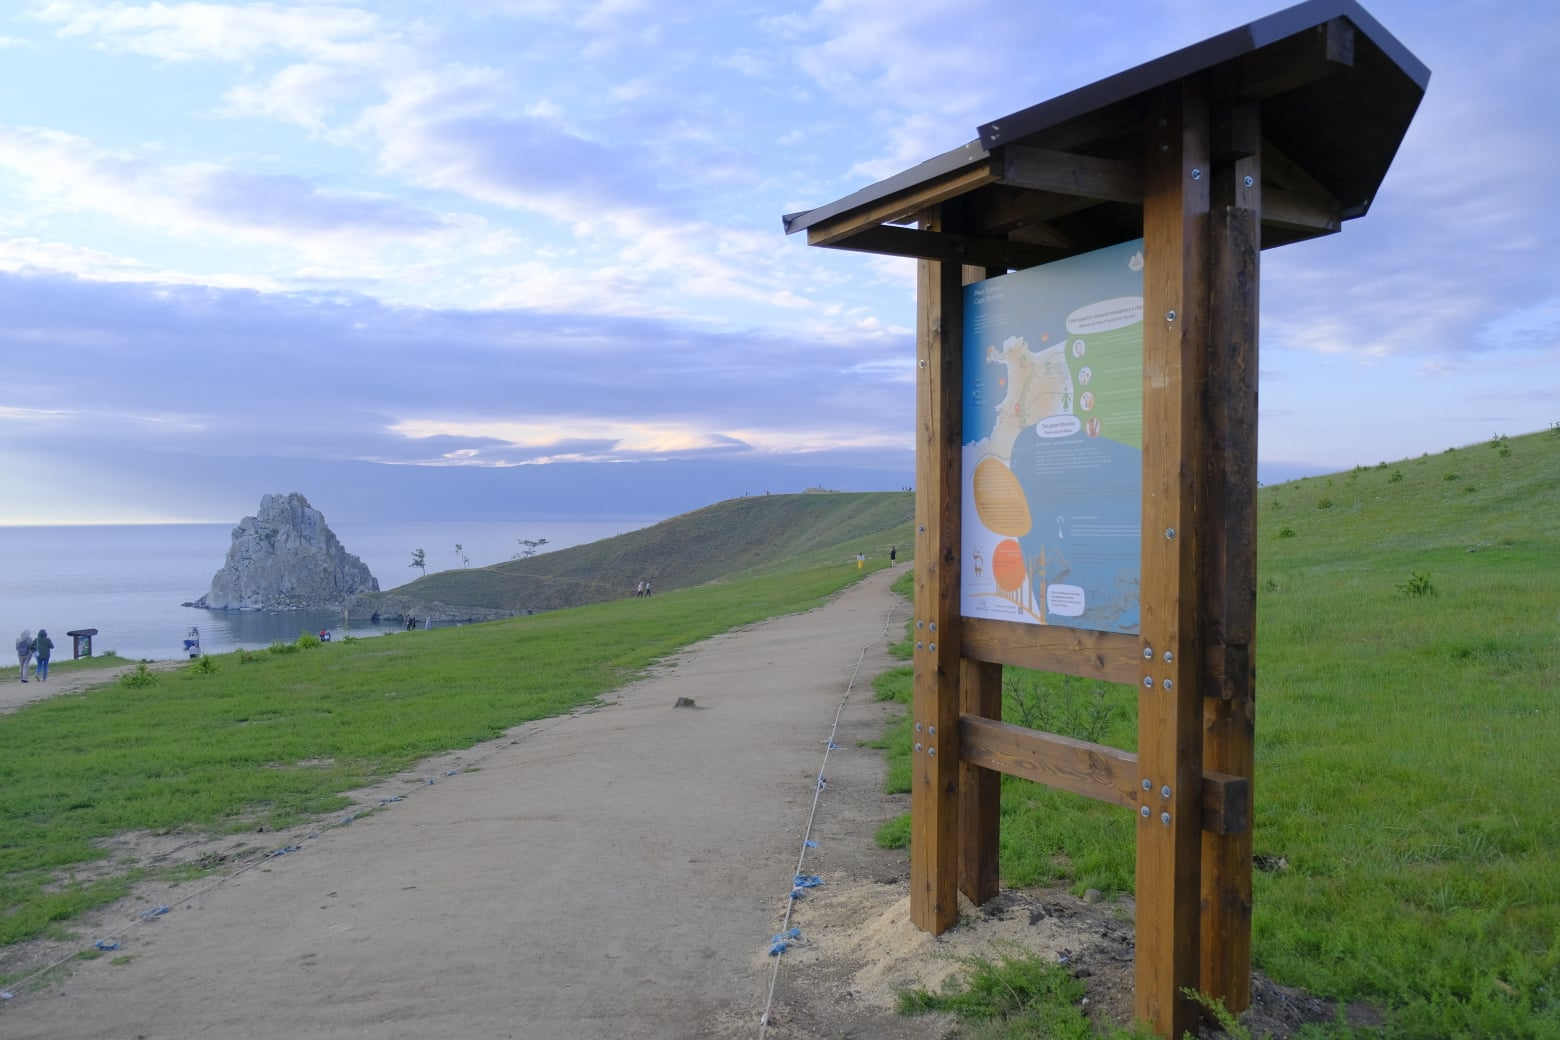 Information panel with a view of Shamanka rock